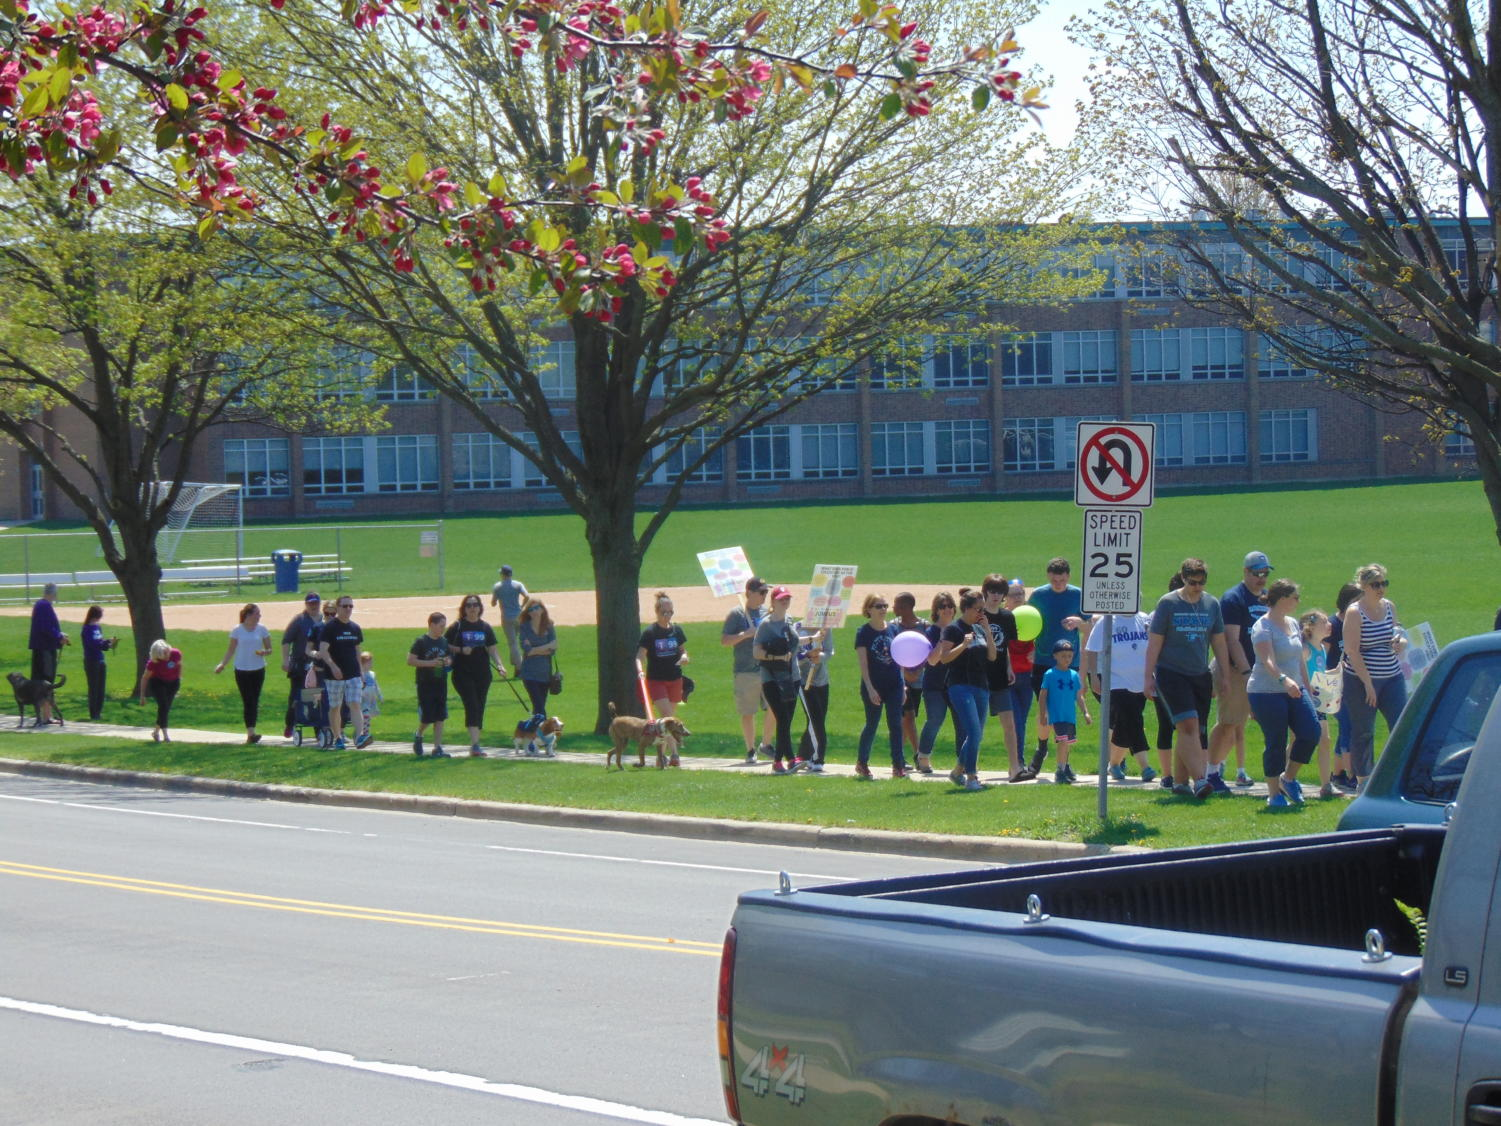 Marchers depart from Downers South HS and make way to McCollum Park